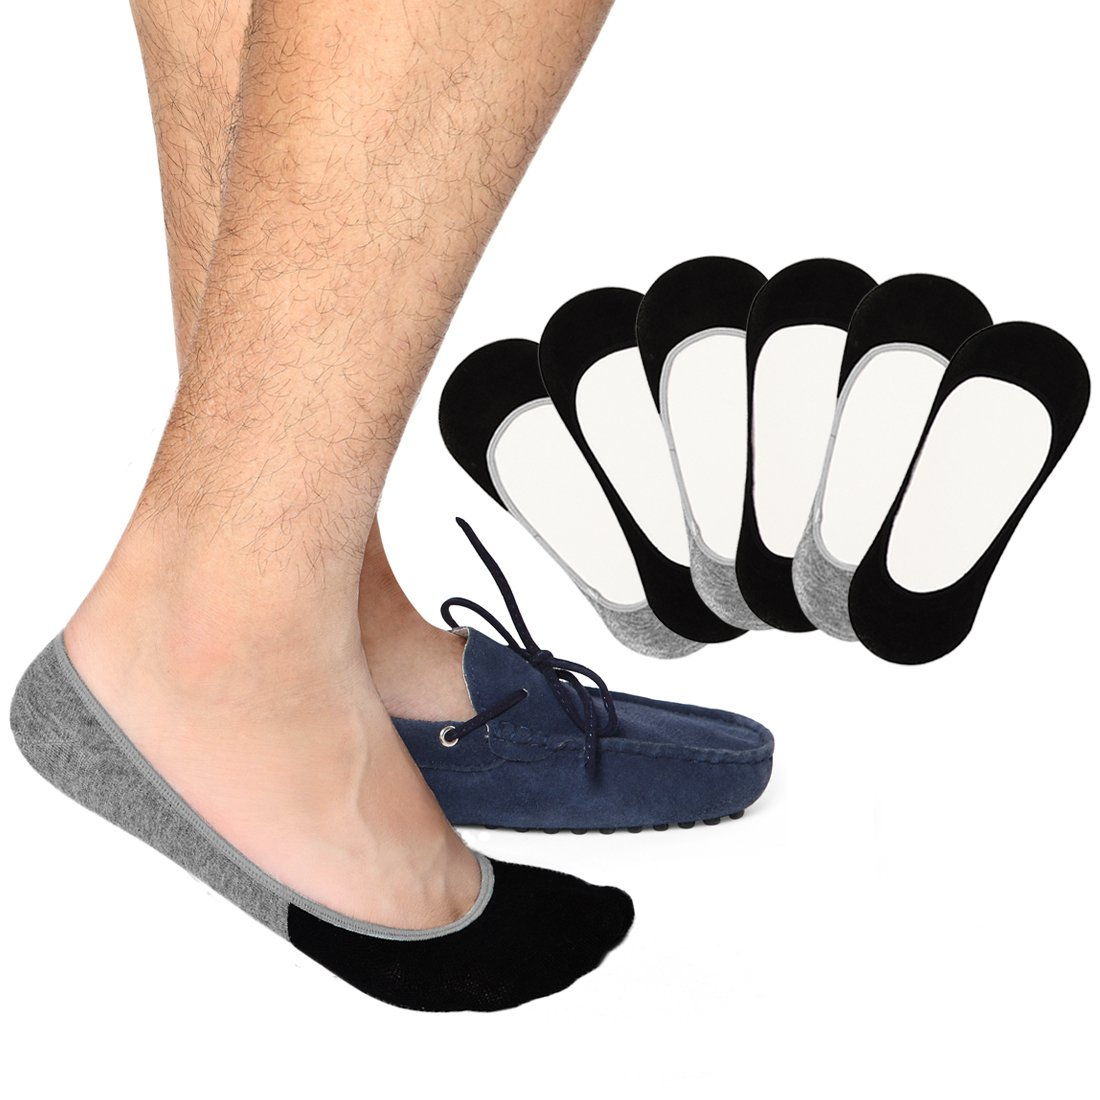 Casual No Show Socks for Men - 6 Pairs Invisible Liner Socks Footies with Silicone Grip